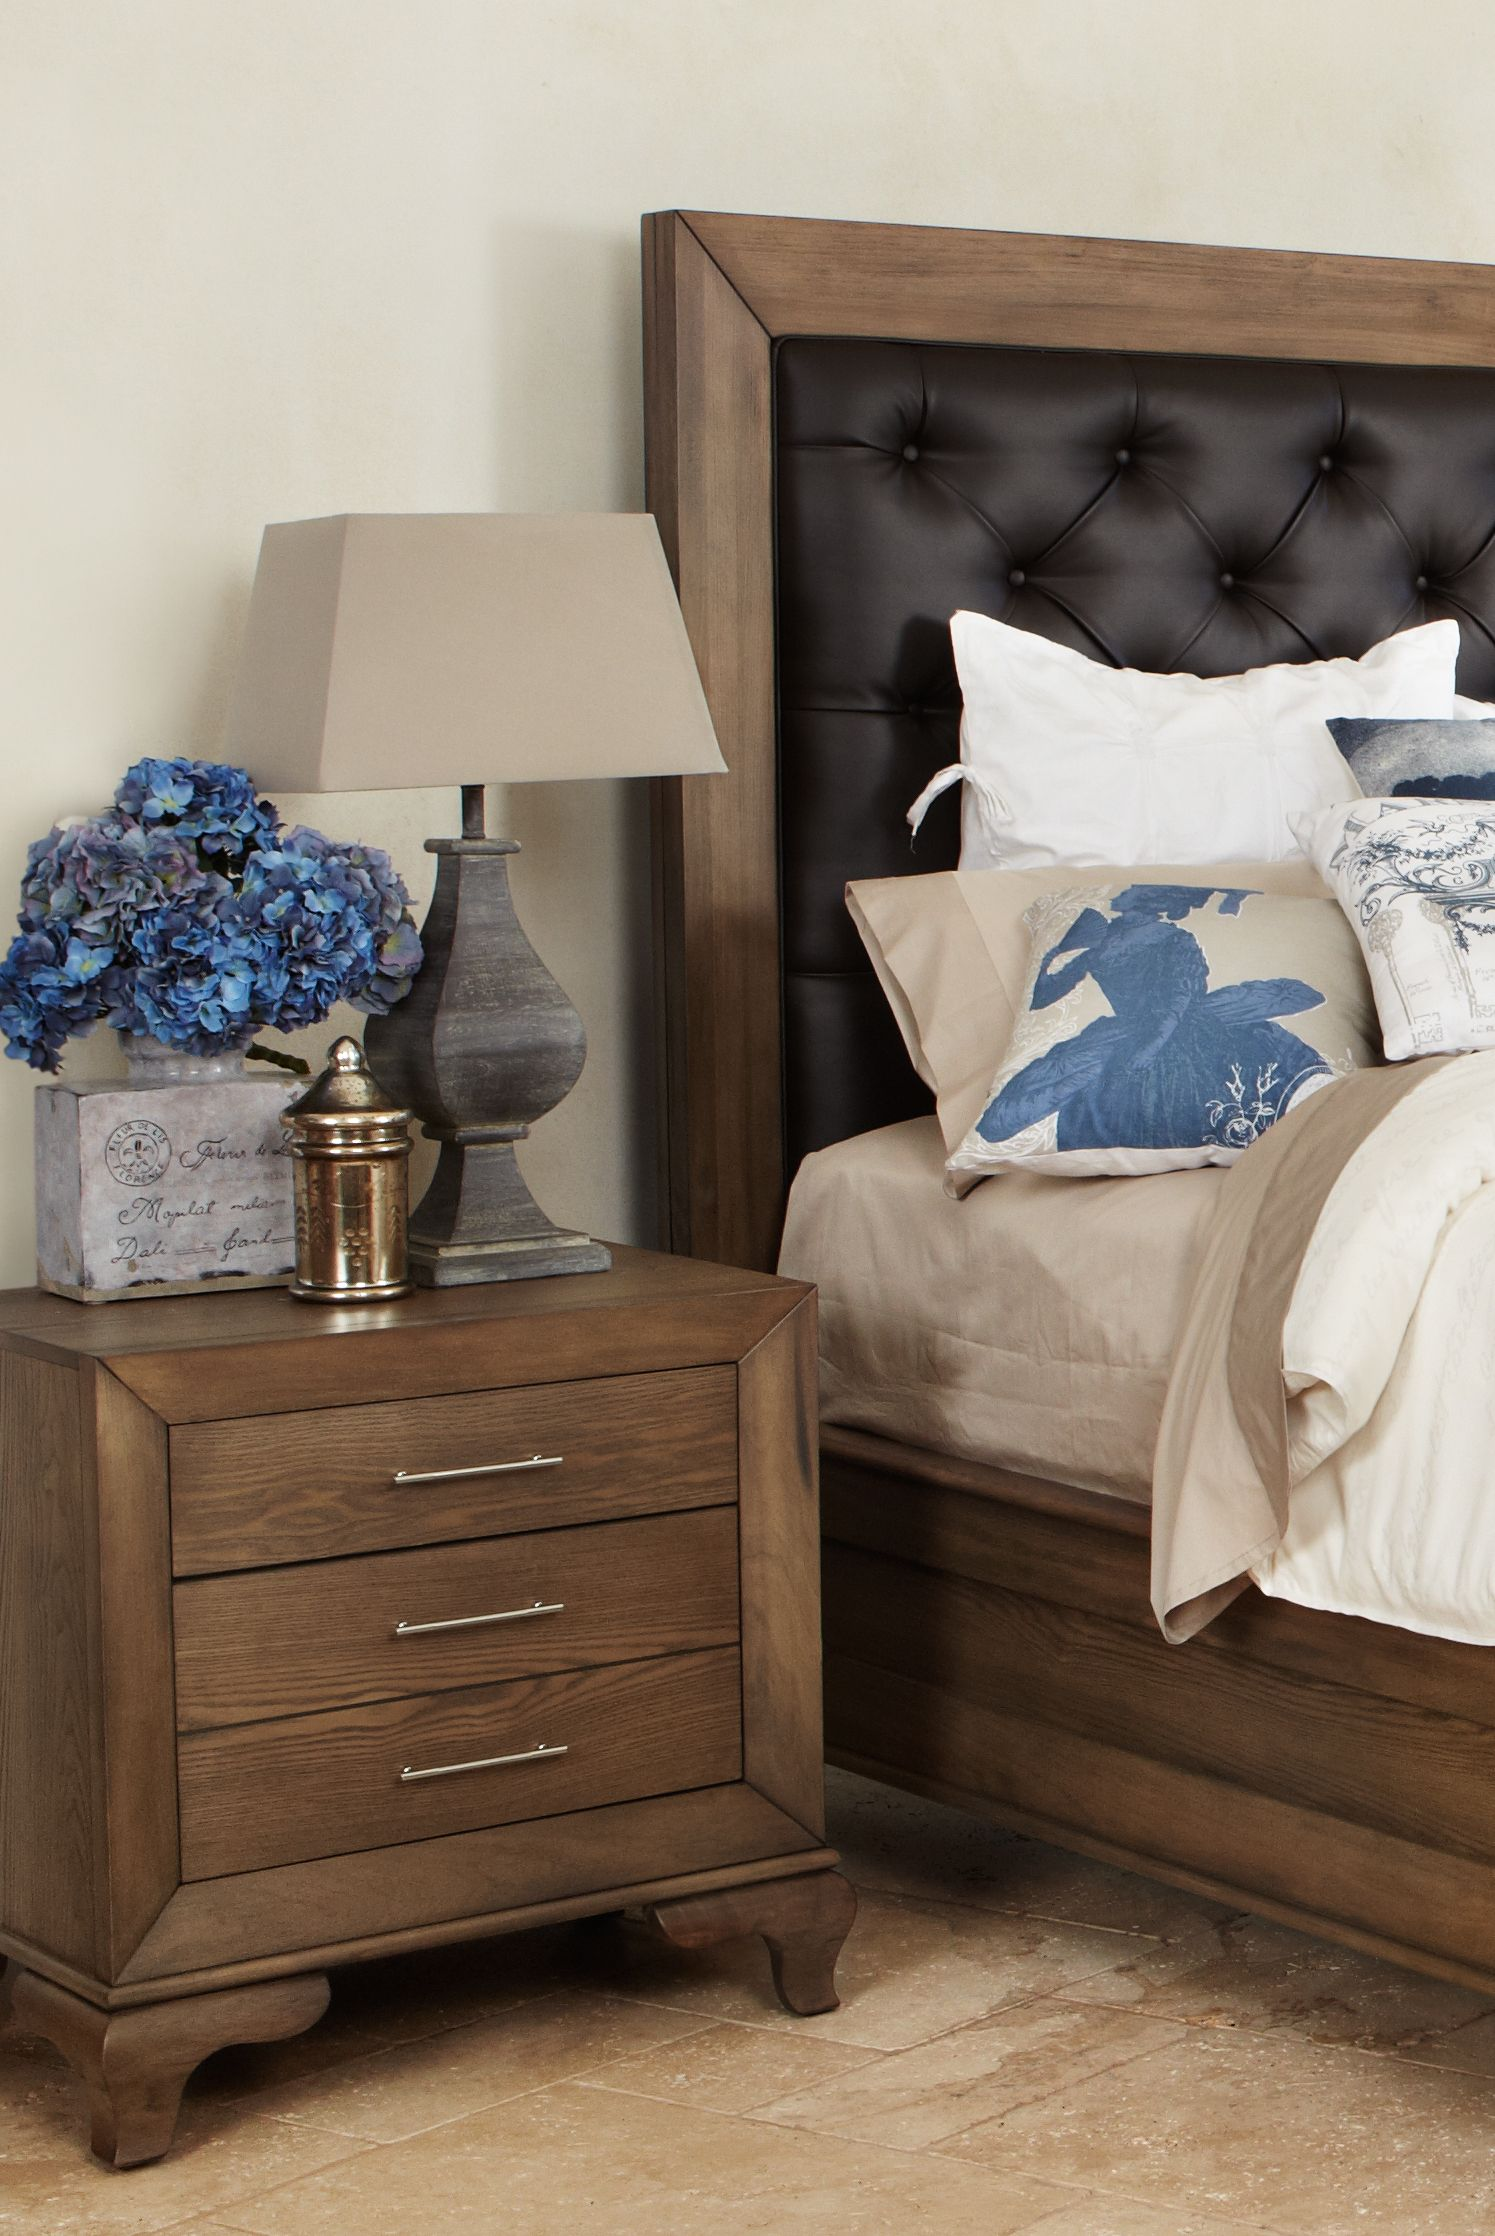 The Florence Classic bedroom suite with lots of clever